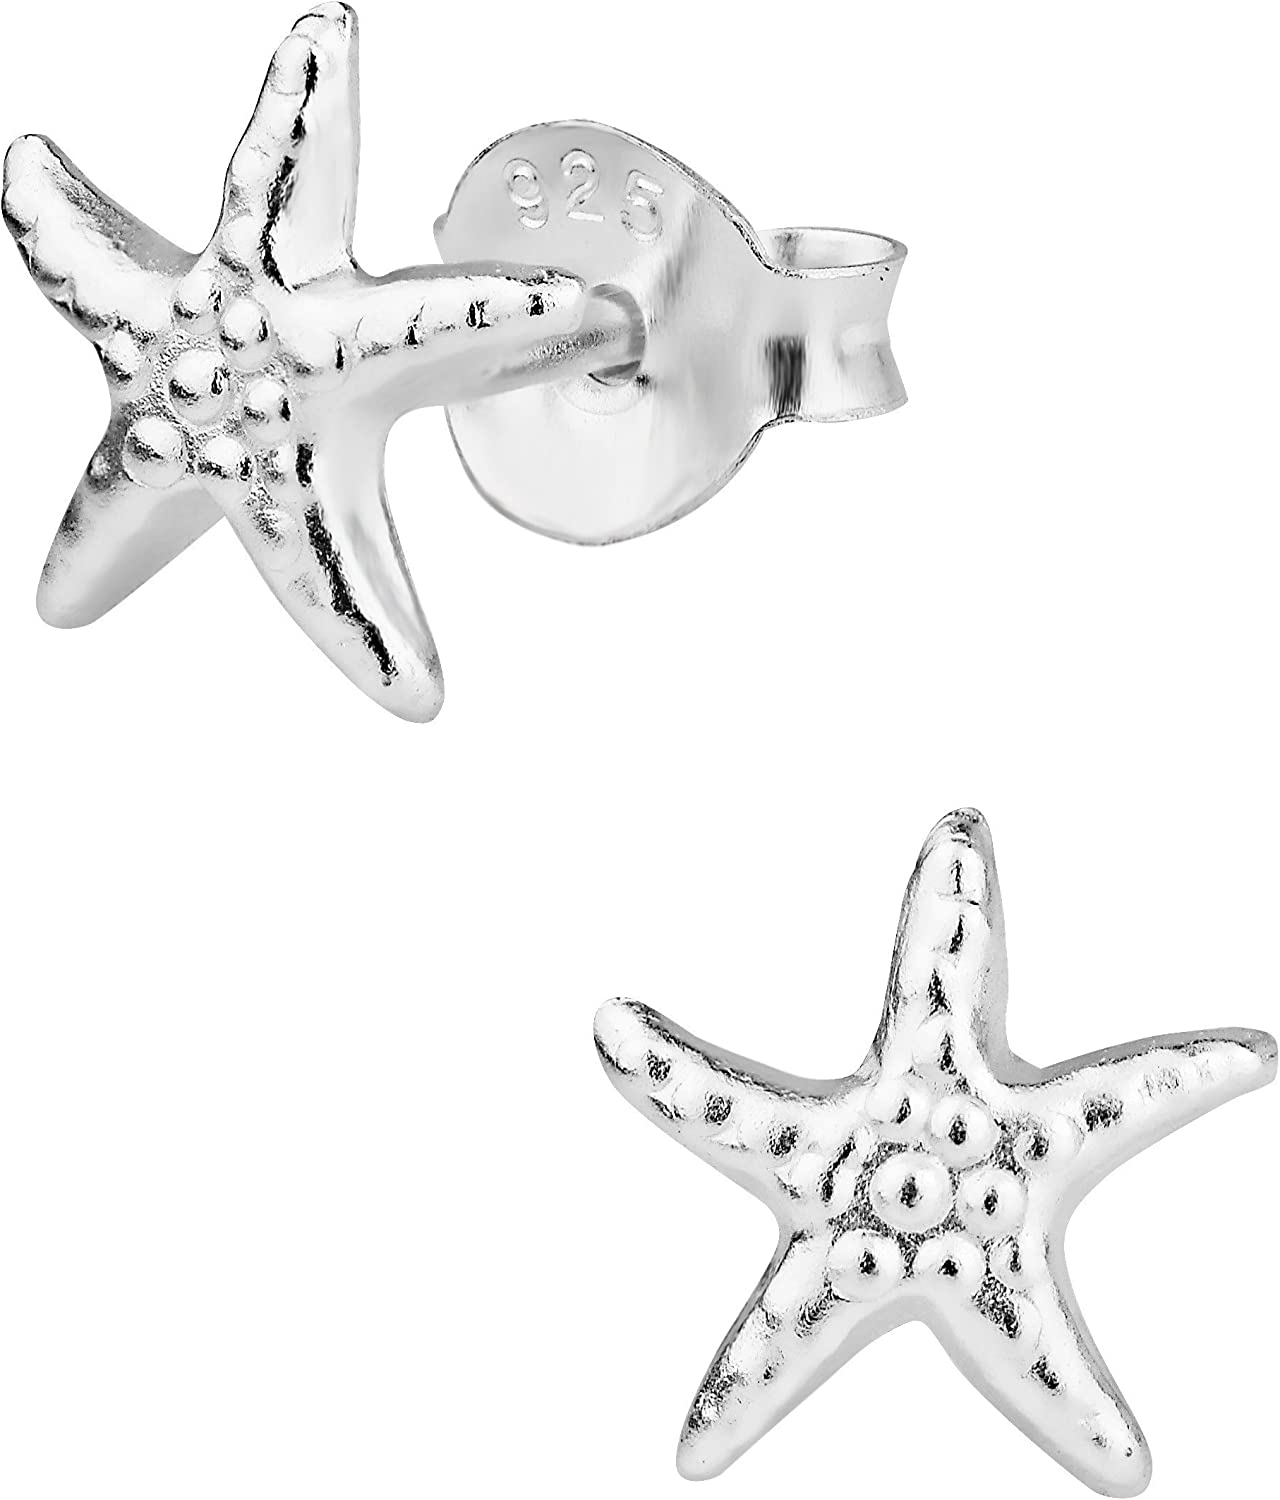 Starfish Cubic Zirconia Ear Studs 925 Sterling Silver With Handmade Prong Setting For Women and Girls